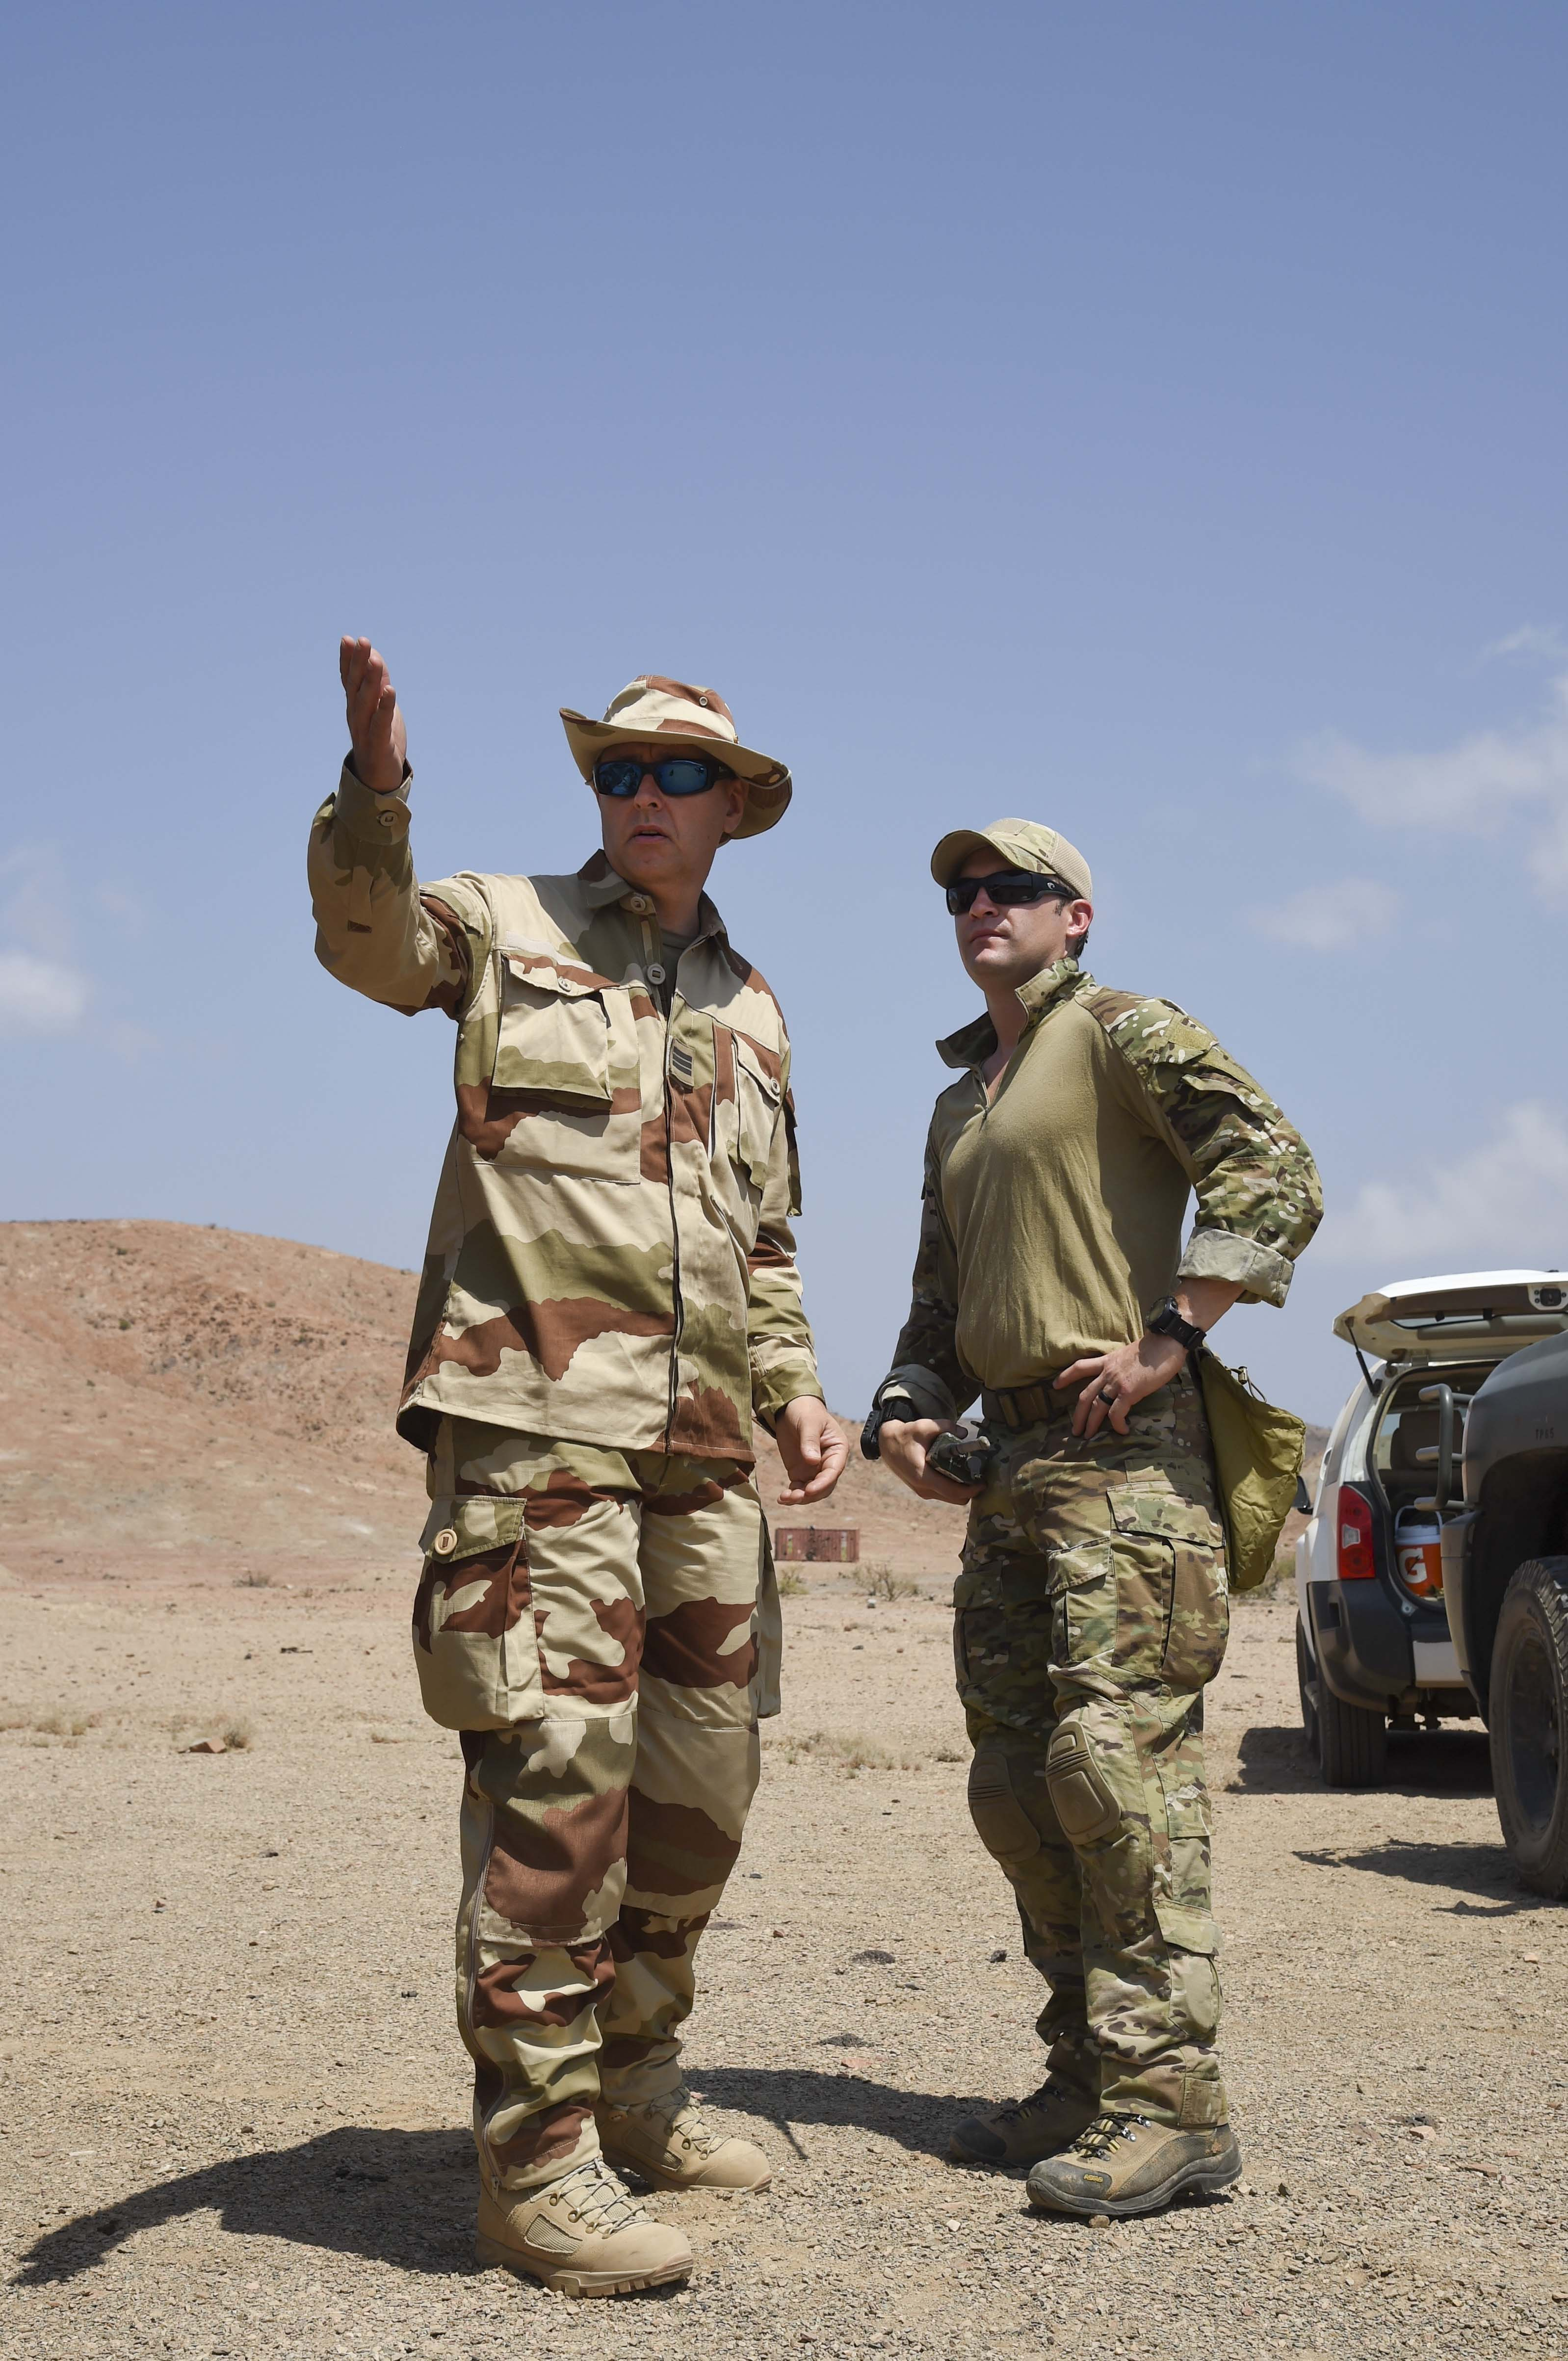 French Capt. Philippe, Explosive Ordnance Disposal (EOD), communicates with U.S. Navy Chief Petty Officer Adam Bartch, EOD Mobile Unit 6, Task Force Sparta, range safety officer, during range clearing operations on a range, Oct. 22, 2016, in Djibouti. During this operation, Navy and French EOD personnel worked bilaterally to safely clear their respective areas of unexploded ordnance. (U.S. Air Force photo by Staff Sgt. Penny Snoozy)